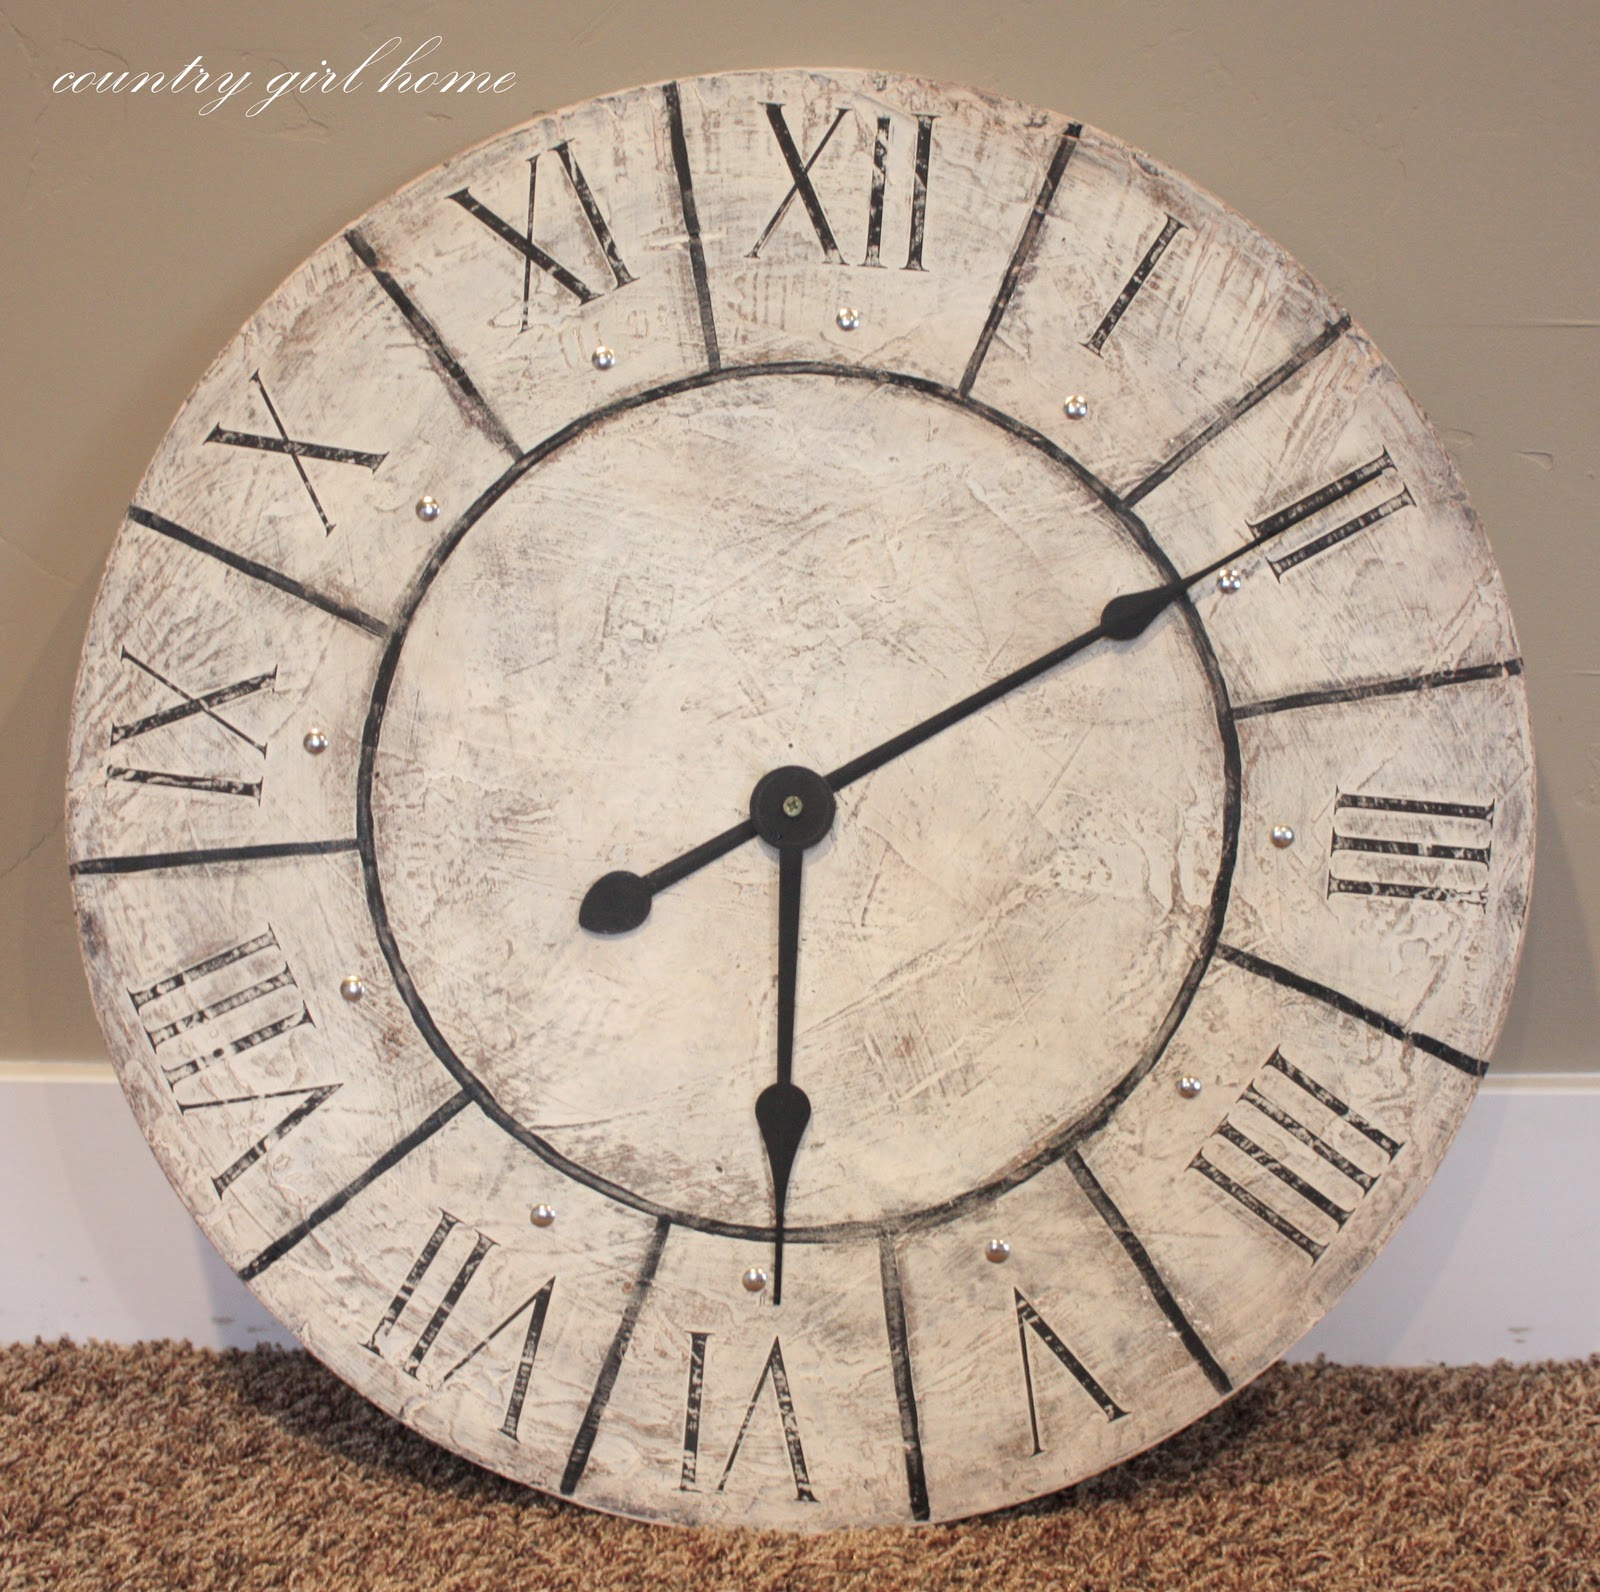 COUNTRY GIRL HOME Large Wall Clock Re Do